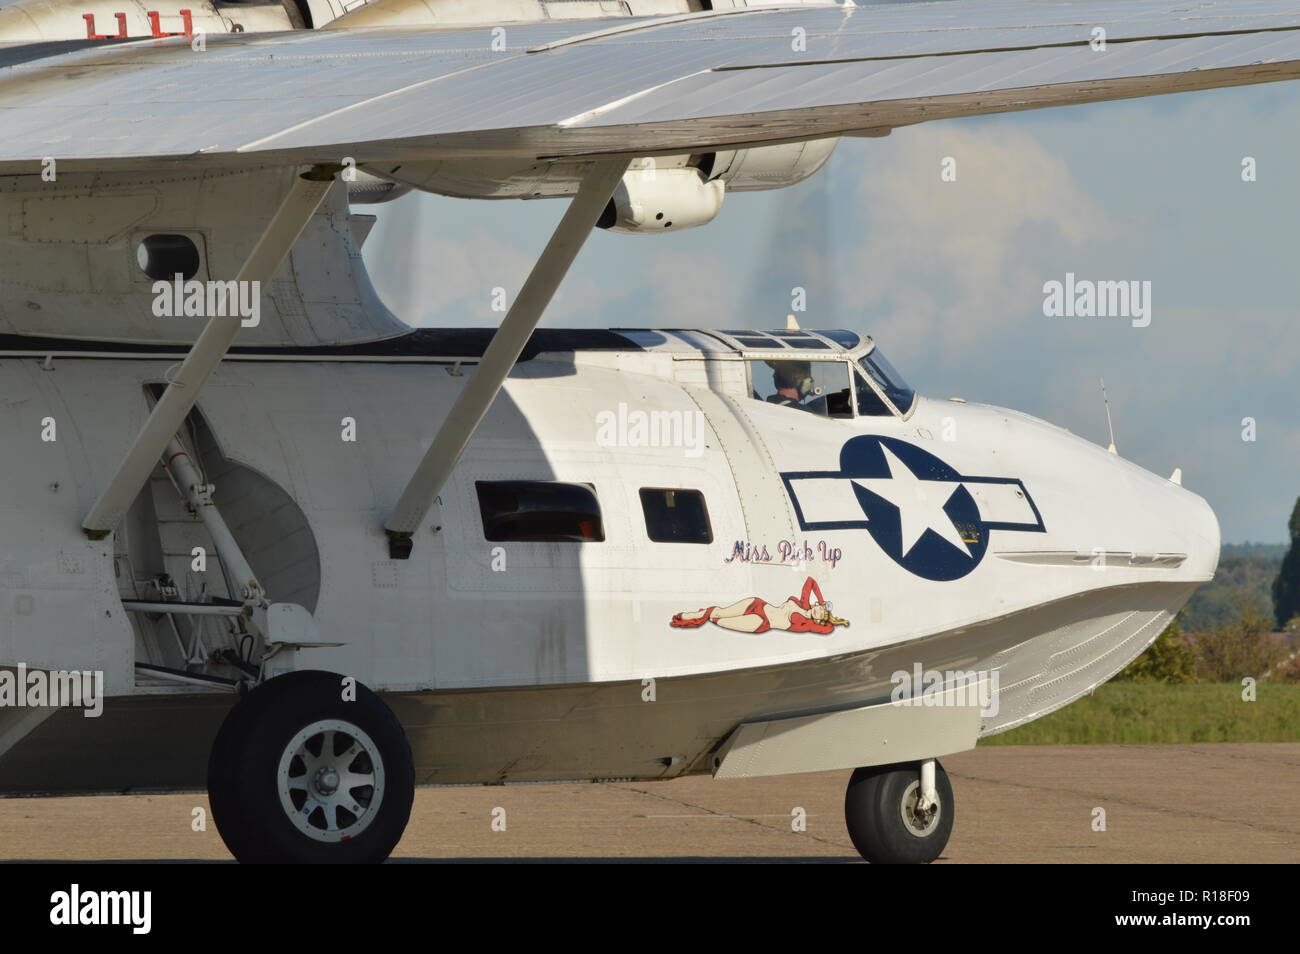 Consolidated Catalina G-PBYA - Stock Image